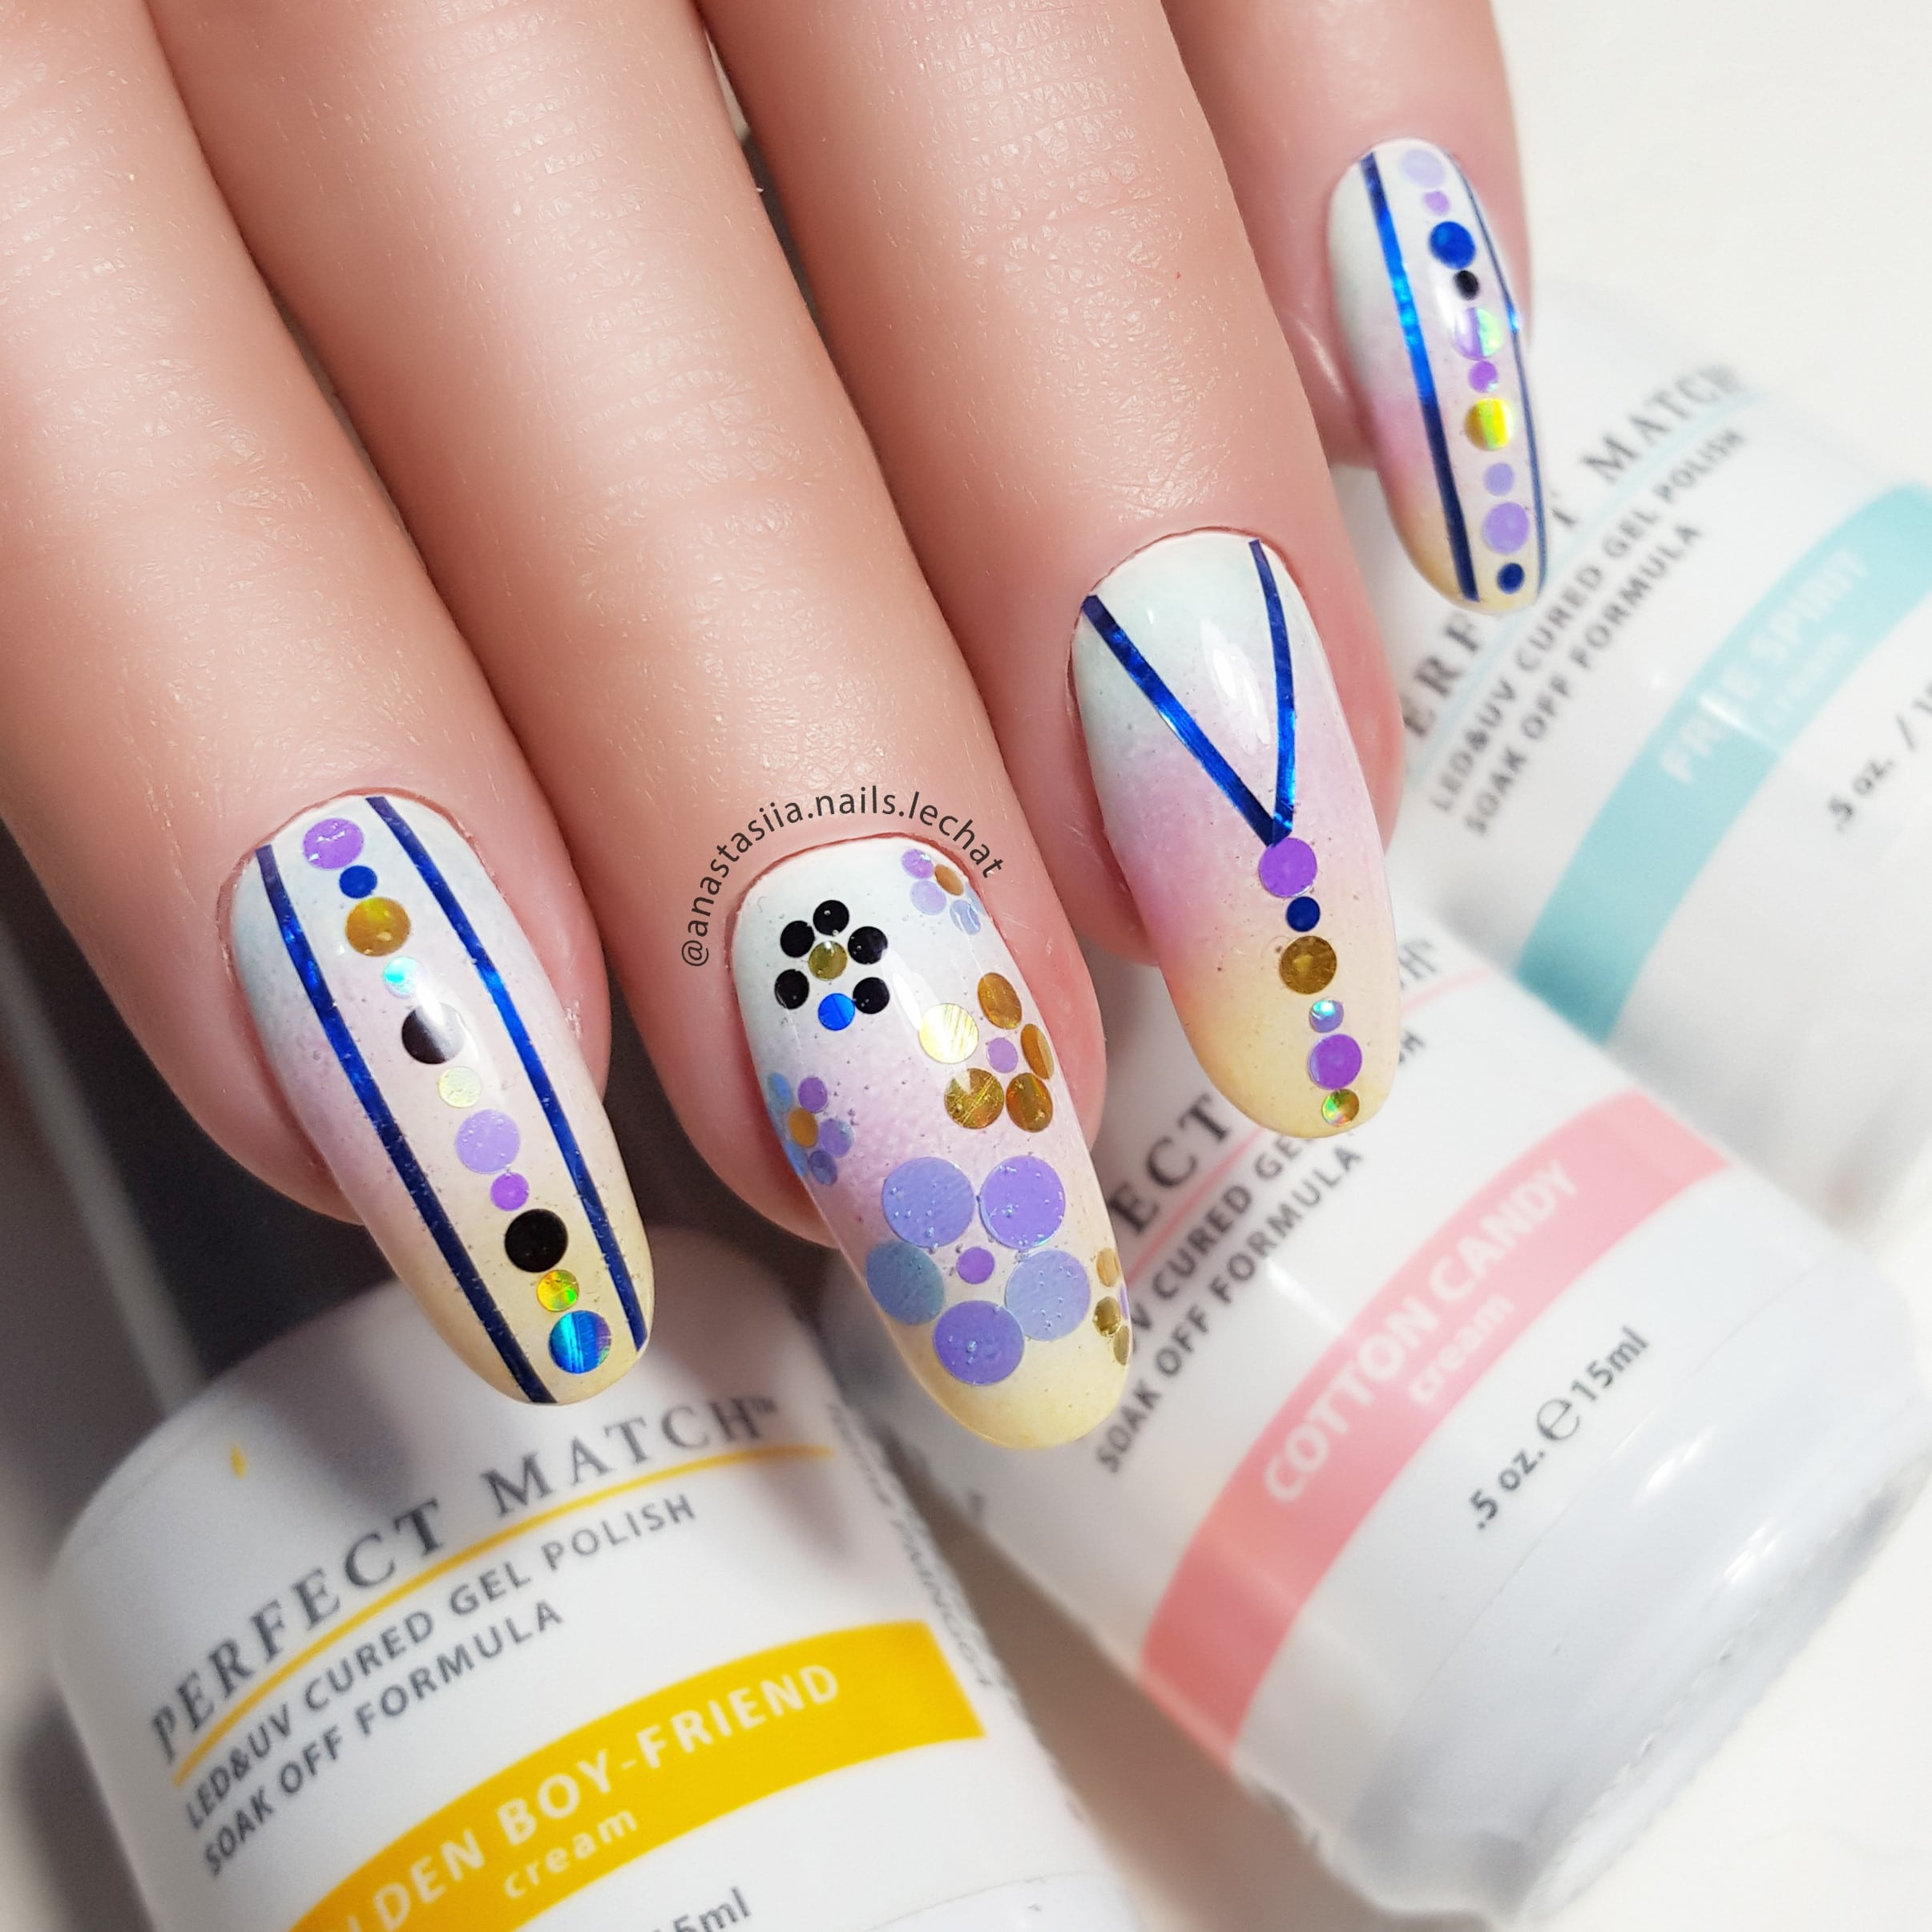 colorful nail art with shades of blue and gold